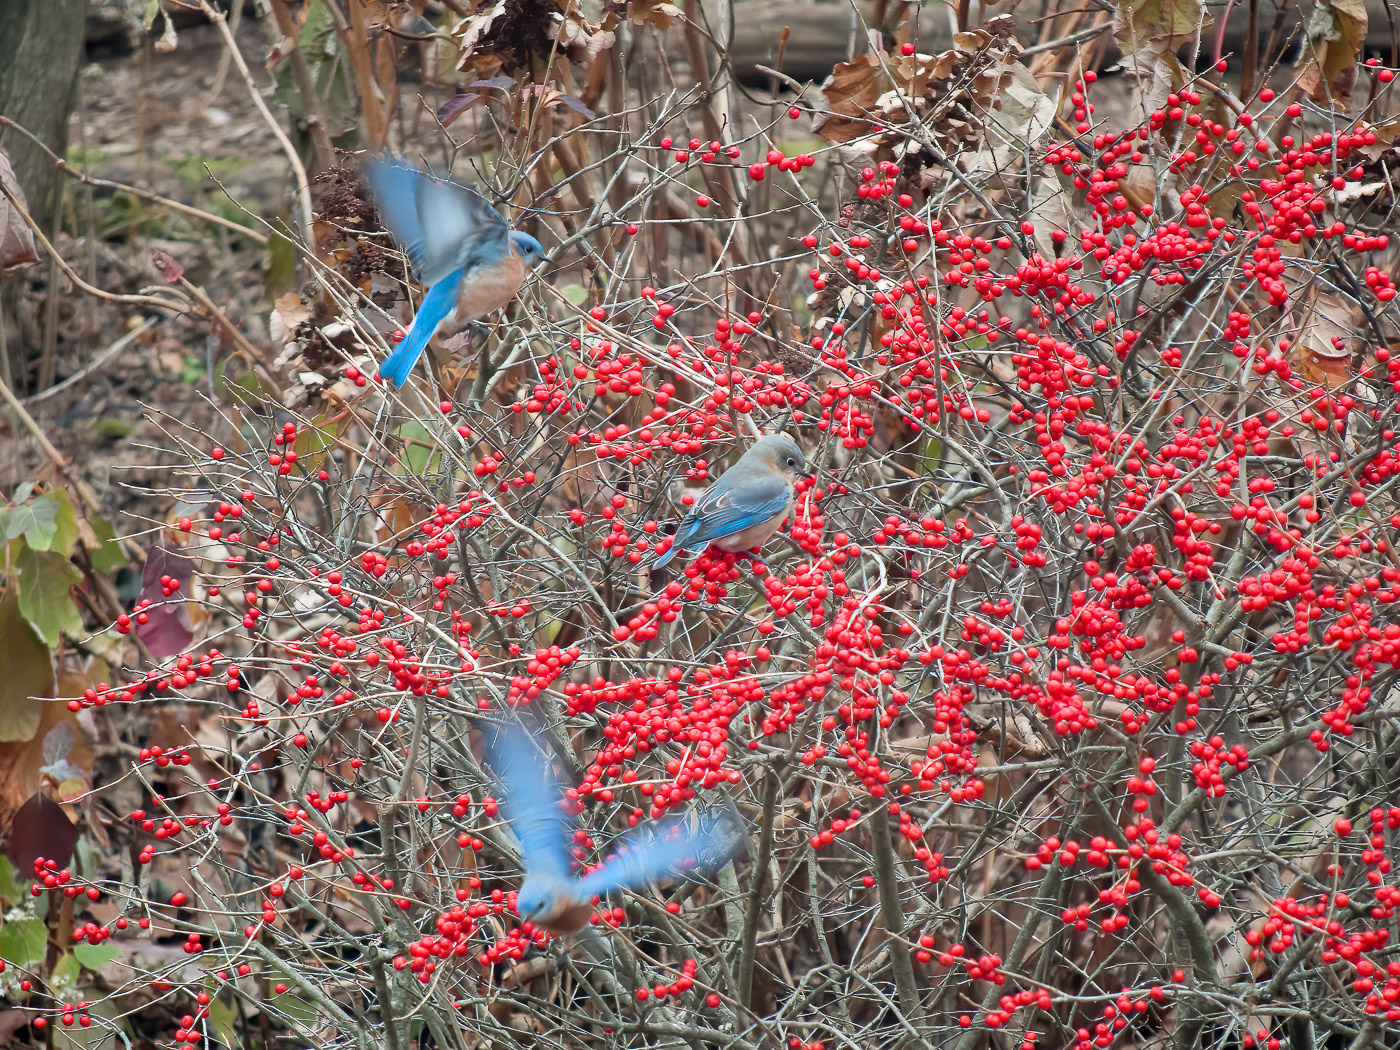 These 3 male bluebirds feeding on Red Sprite berries are a colorful winter treat.